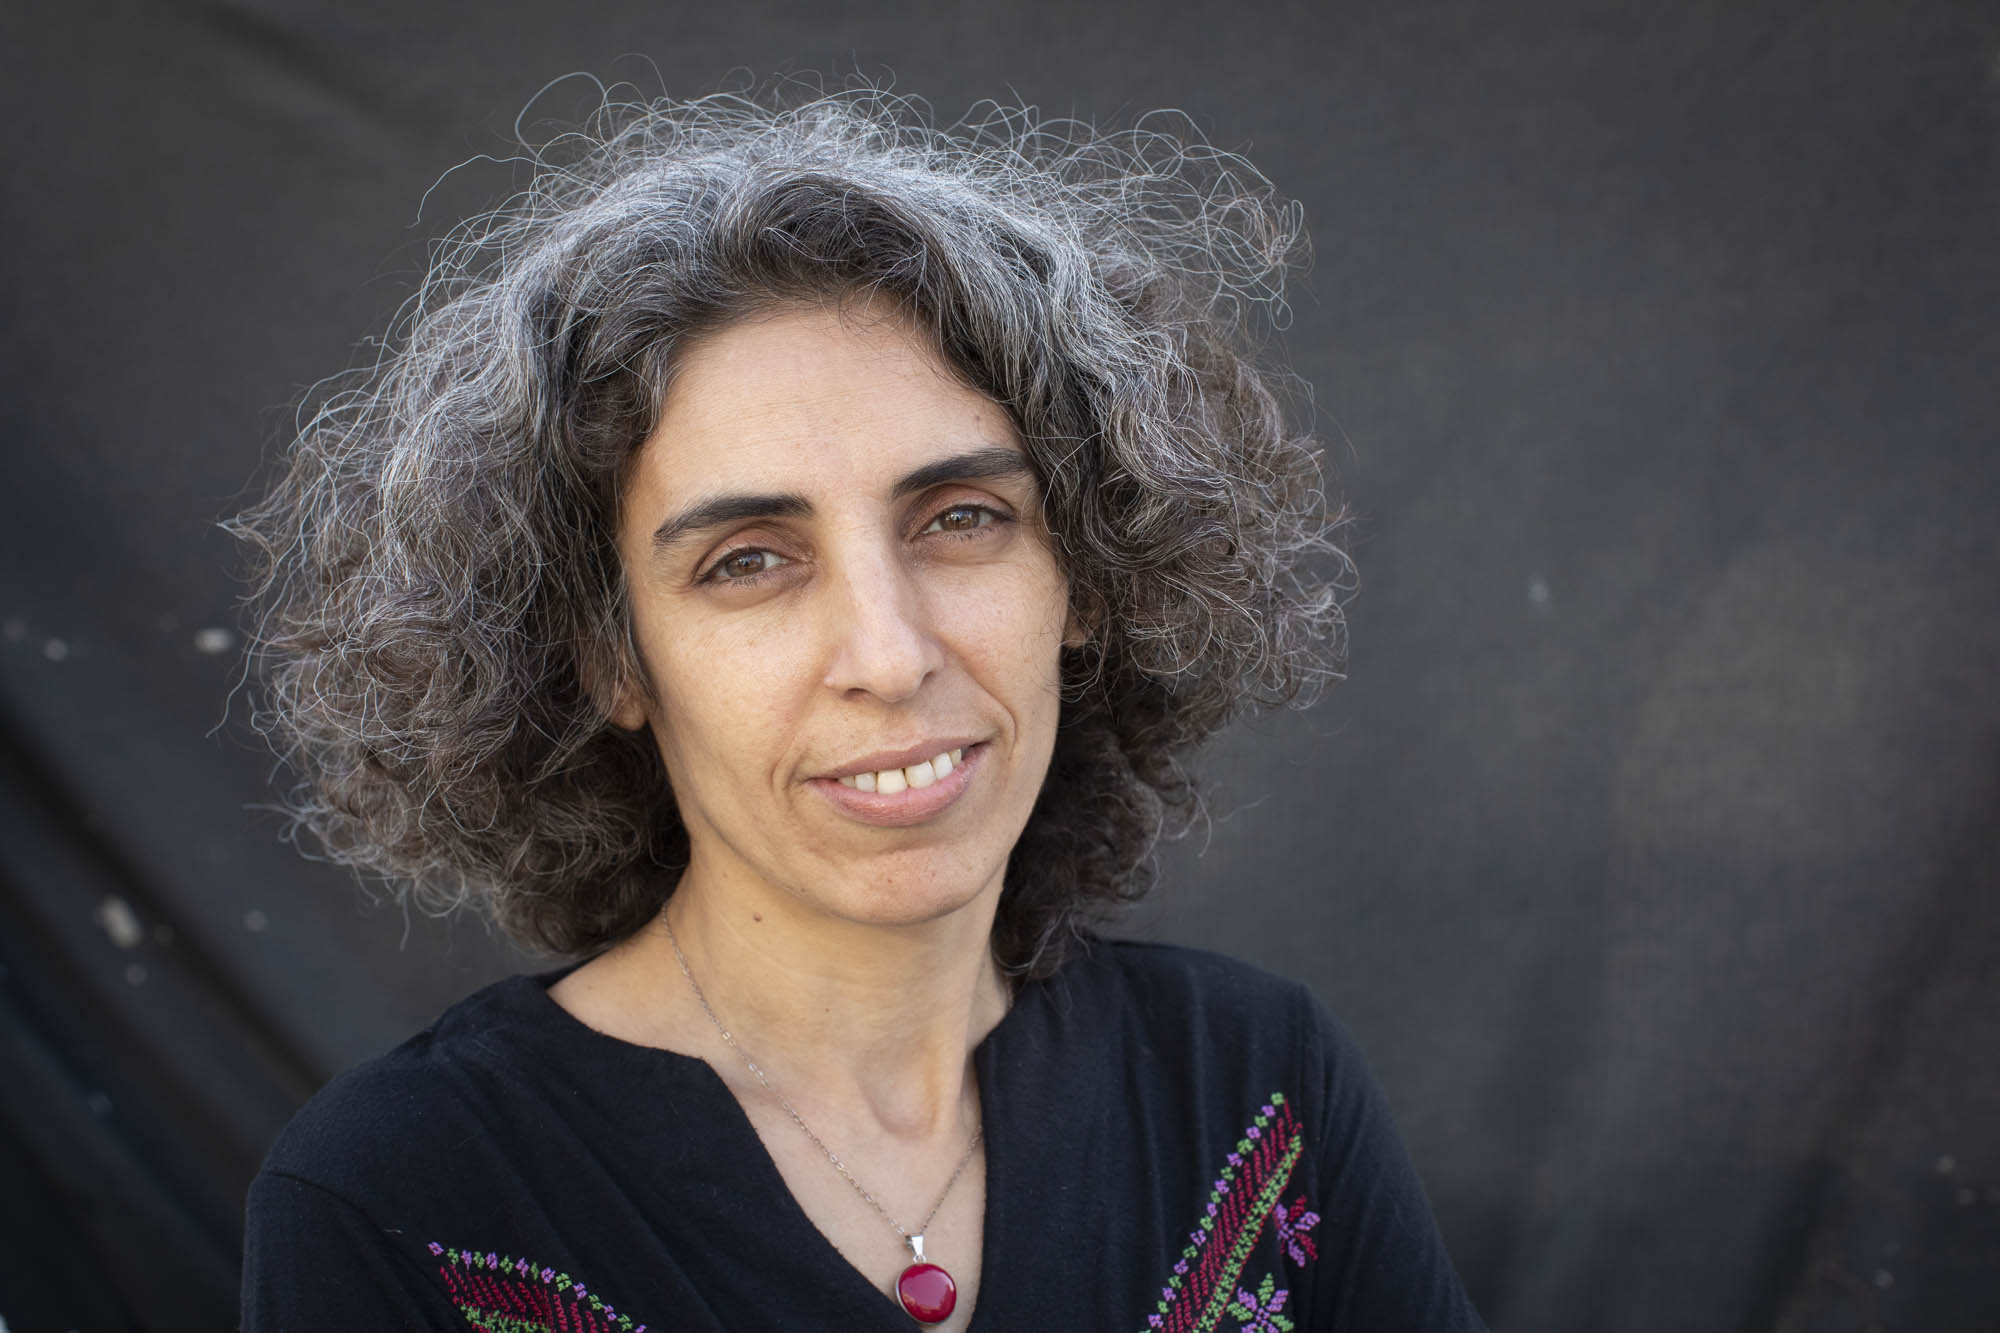 One Climate co-founder Muna Shaheen. 'Colonialism combined with capitalism creates a situation that allows the Israeli government to take more advantage of resources, and we are located in a very sensitive, endangered area.'